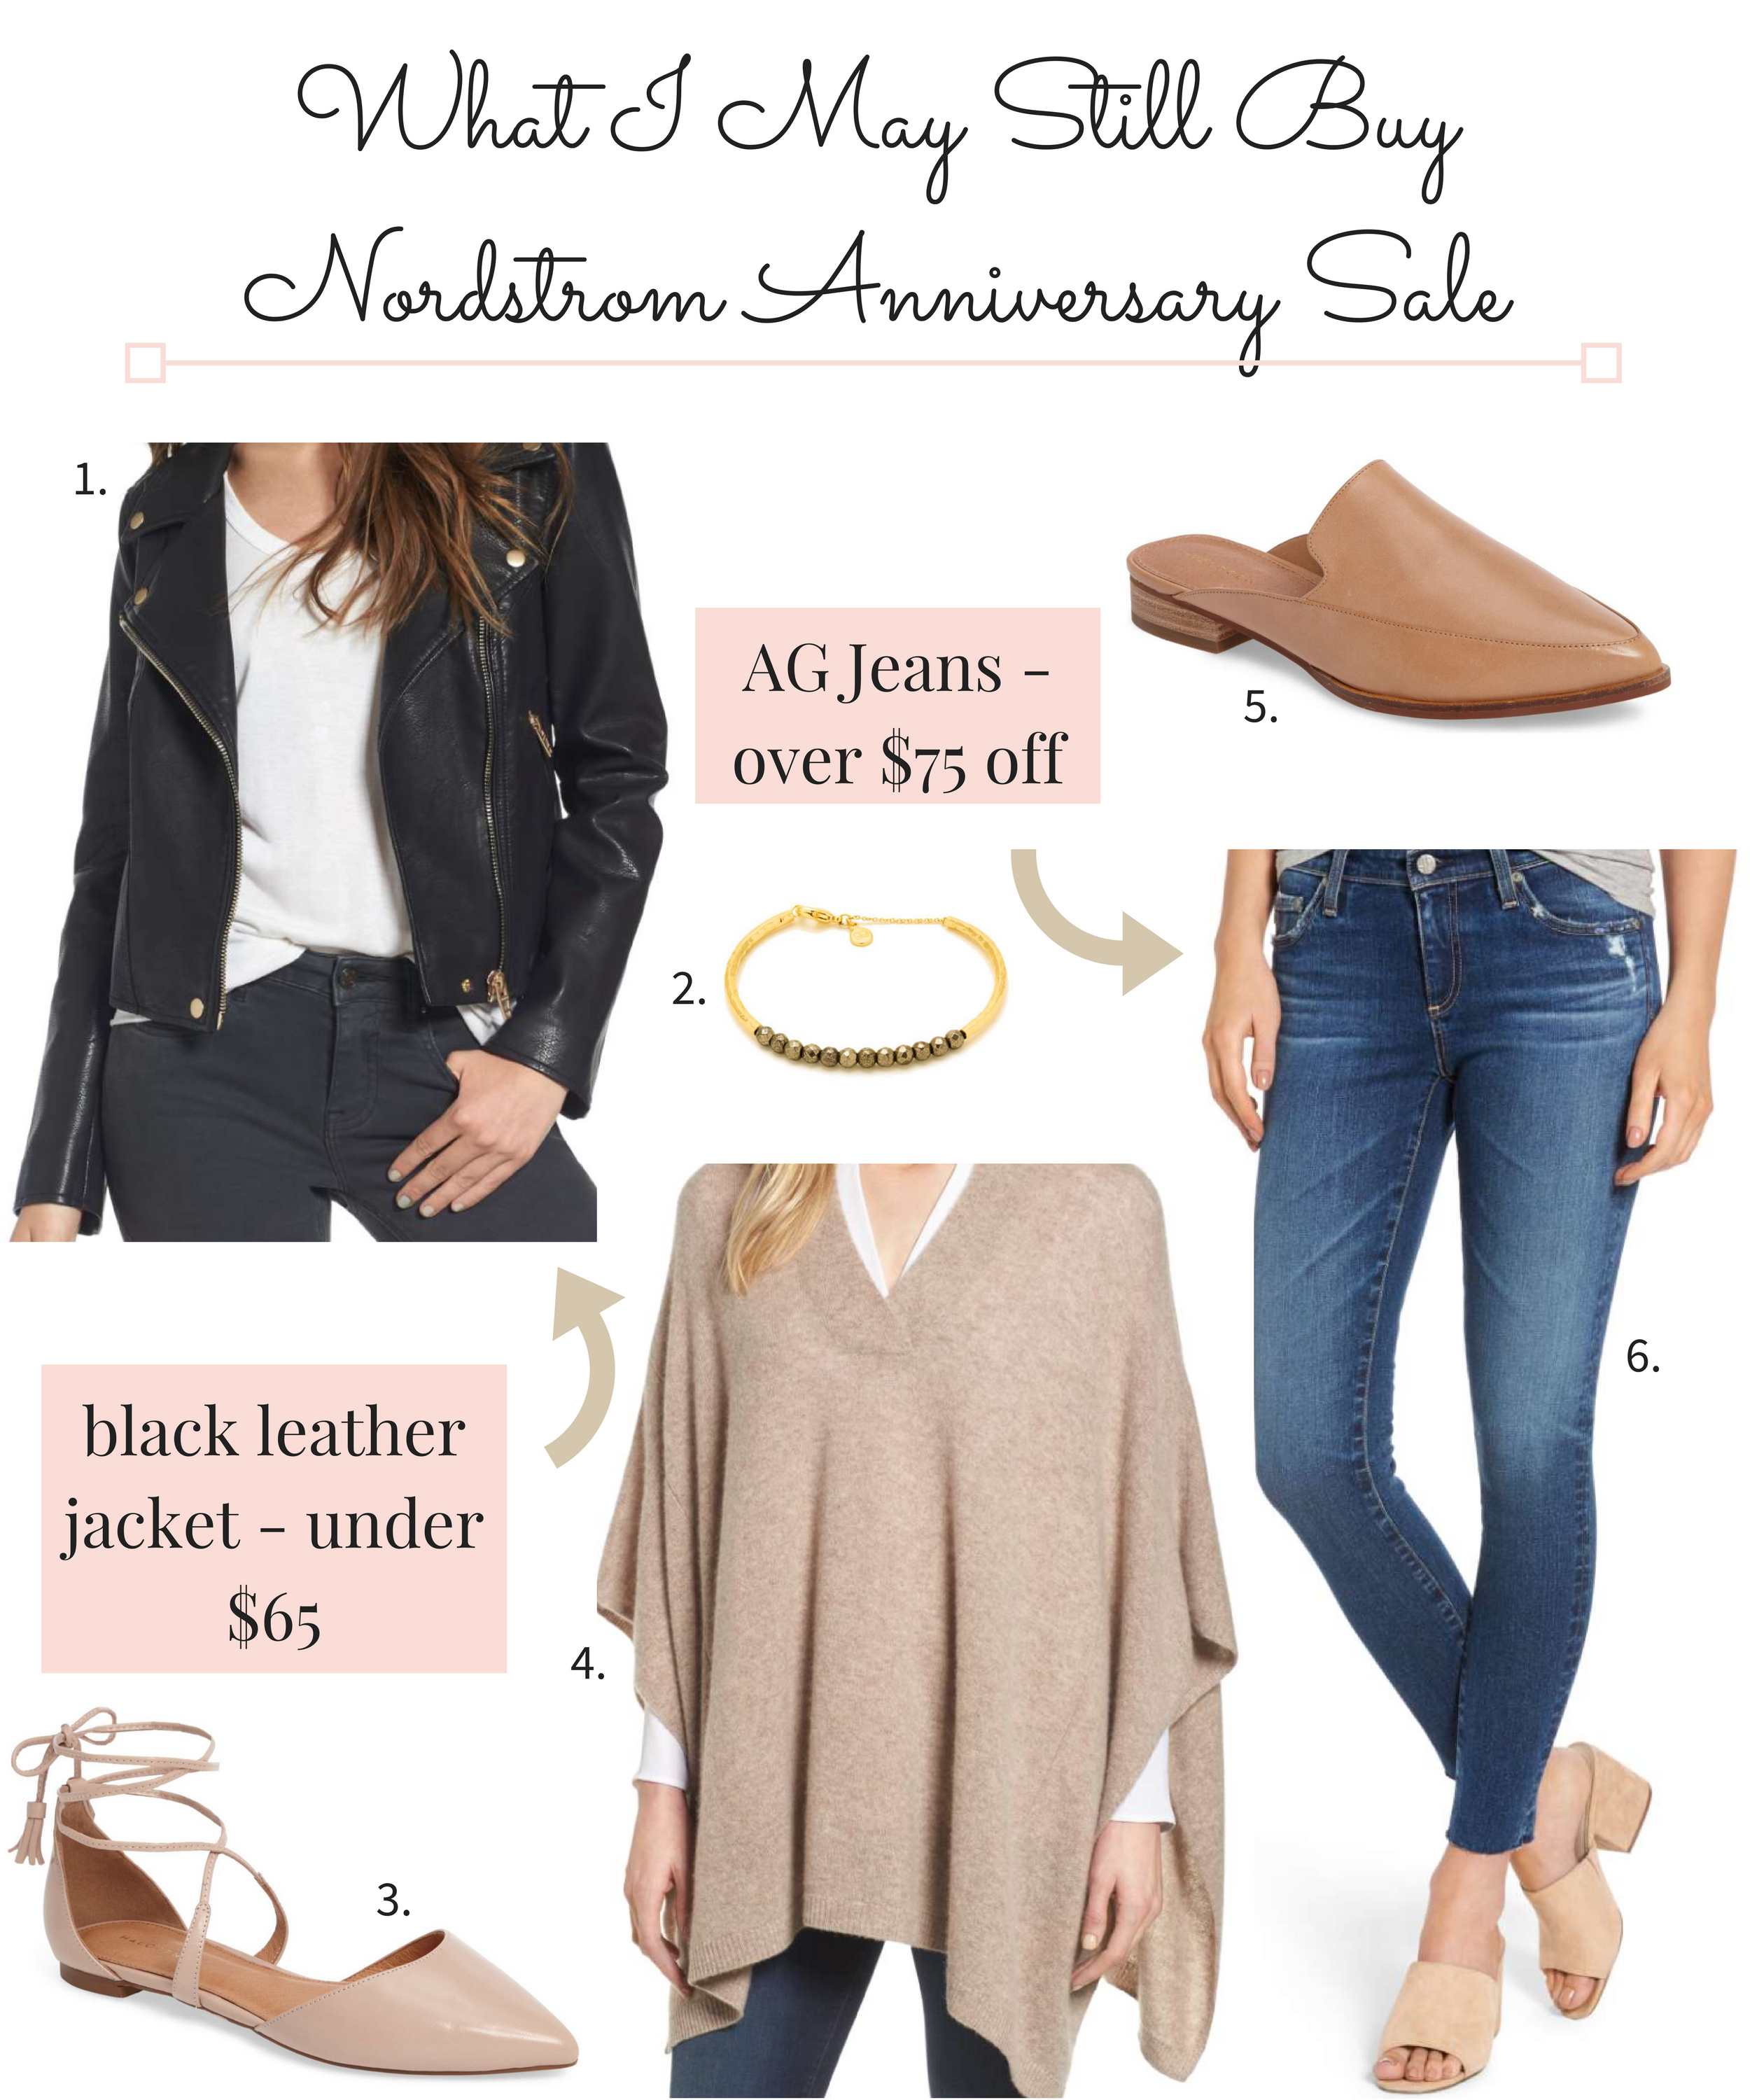 Nordstrom Anniversary Sale 2017 picks